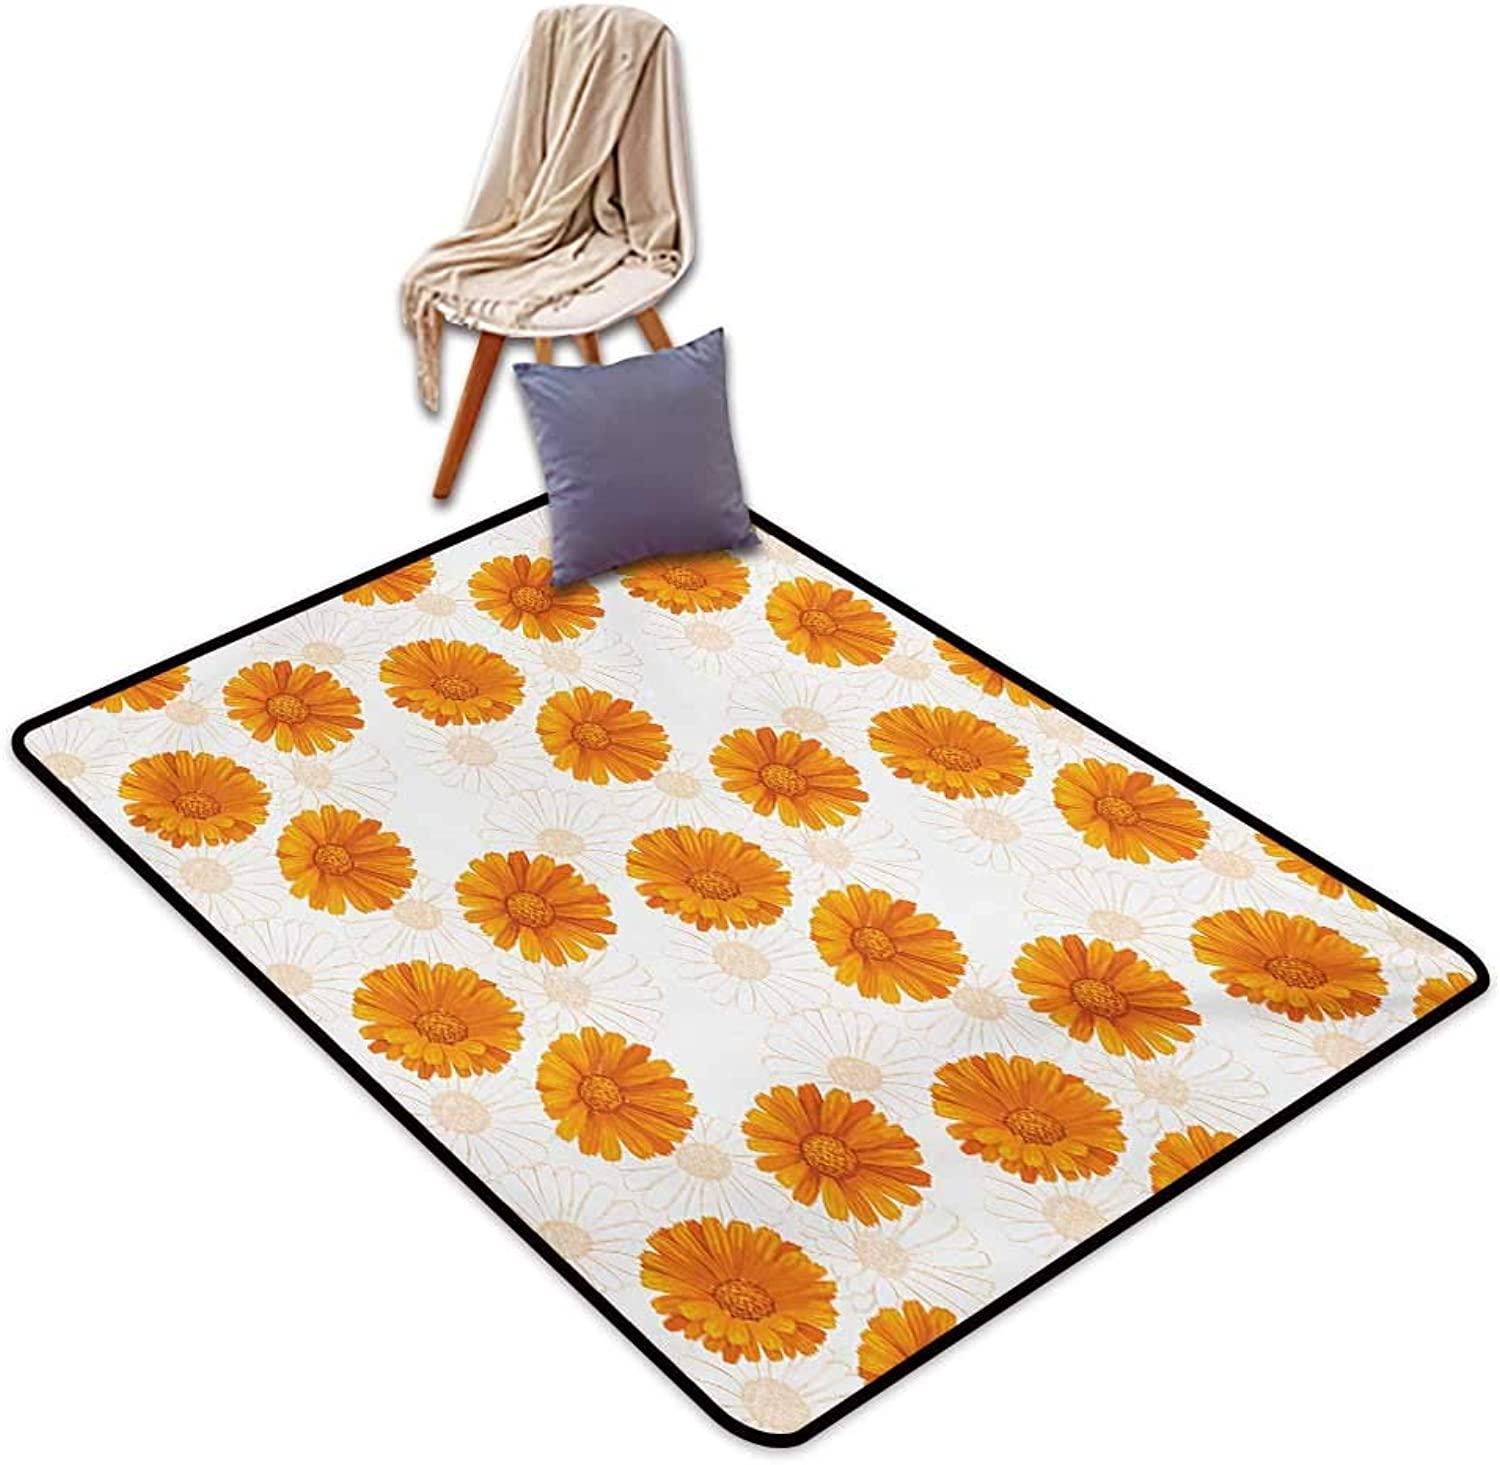 Burnt orange Entrance Door mat Blooming Calendula Flowers Watercolor Botany Themed Composition Water Absorption, Anti-Skid and Oil Proof 48  Wx59 L Burnt orange and White